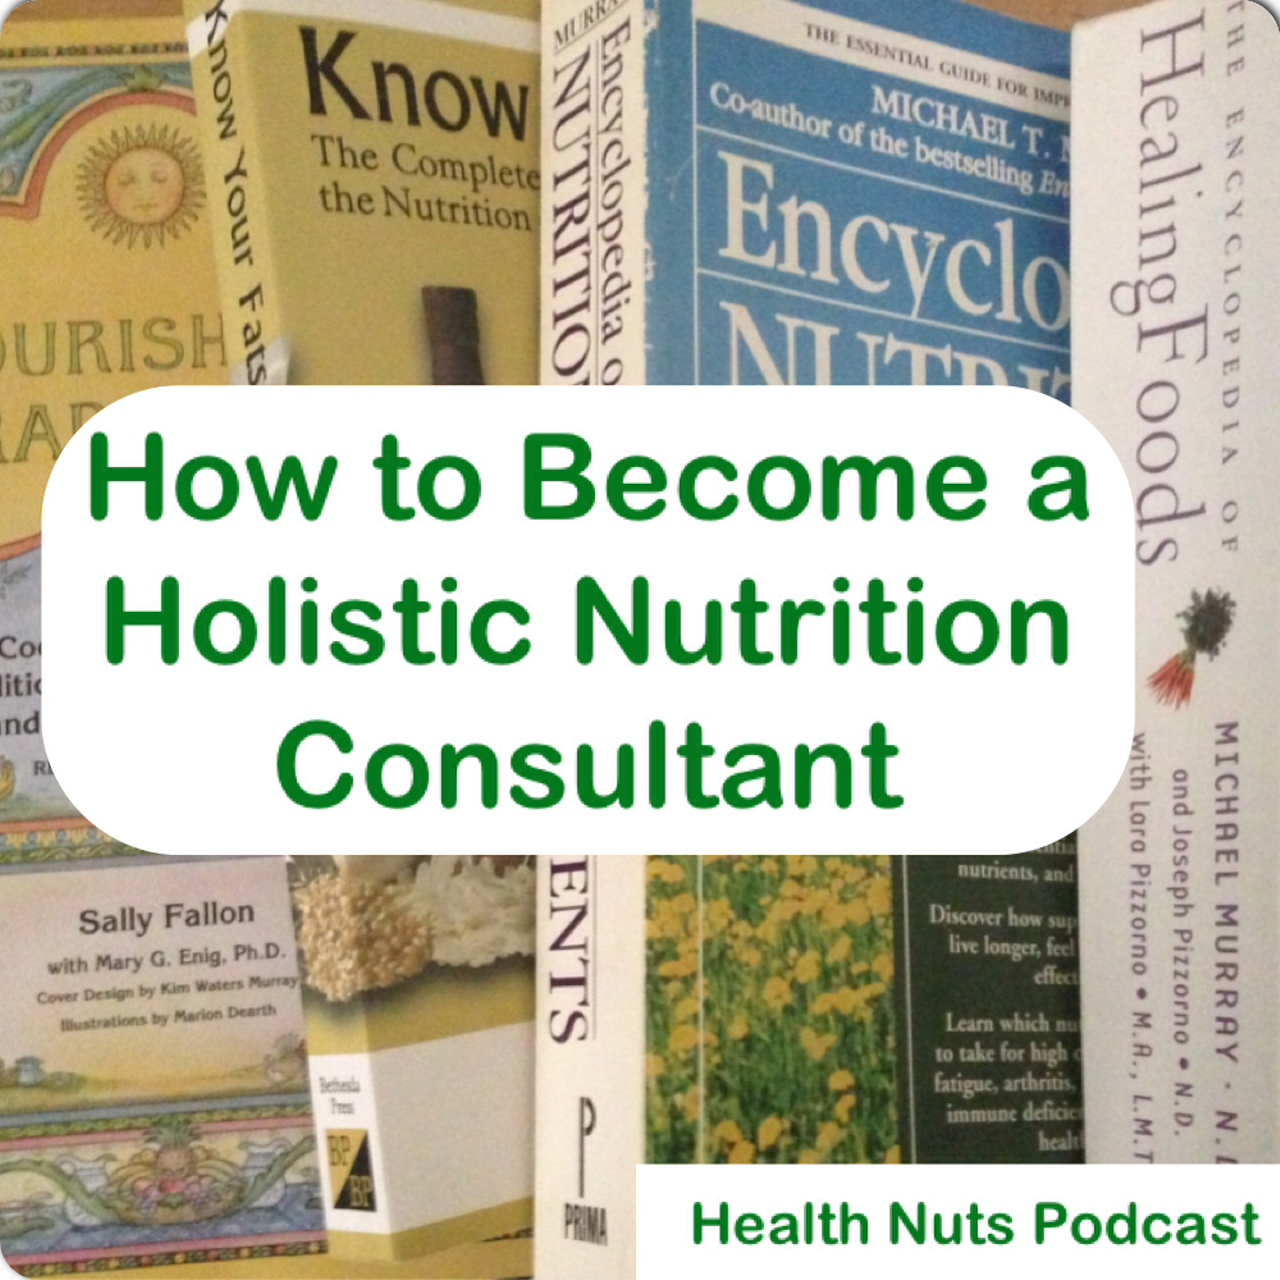 how to become a holistic nutritionist or nutrition consultant, Human Body